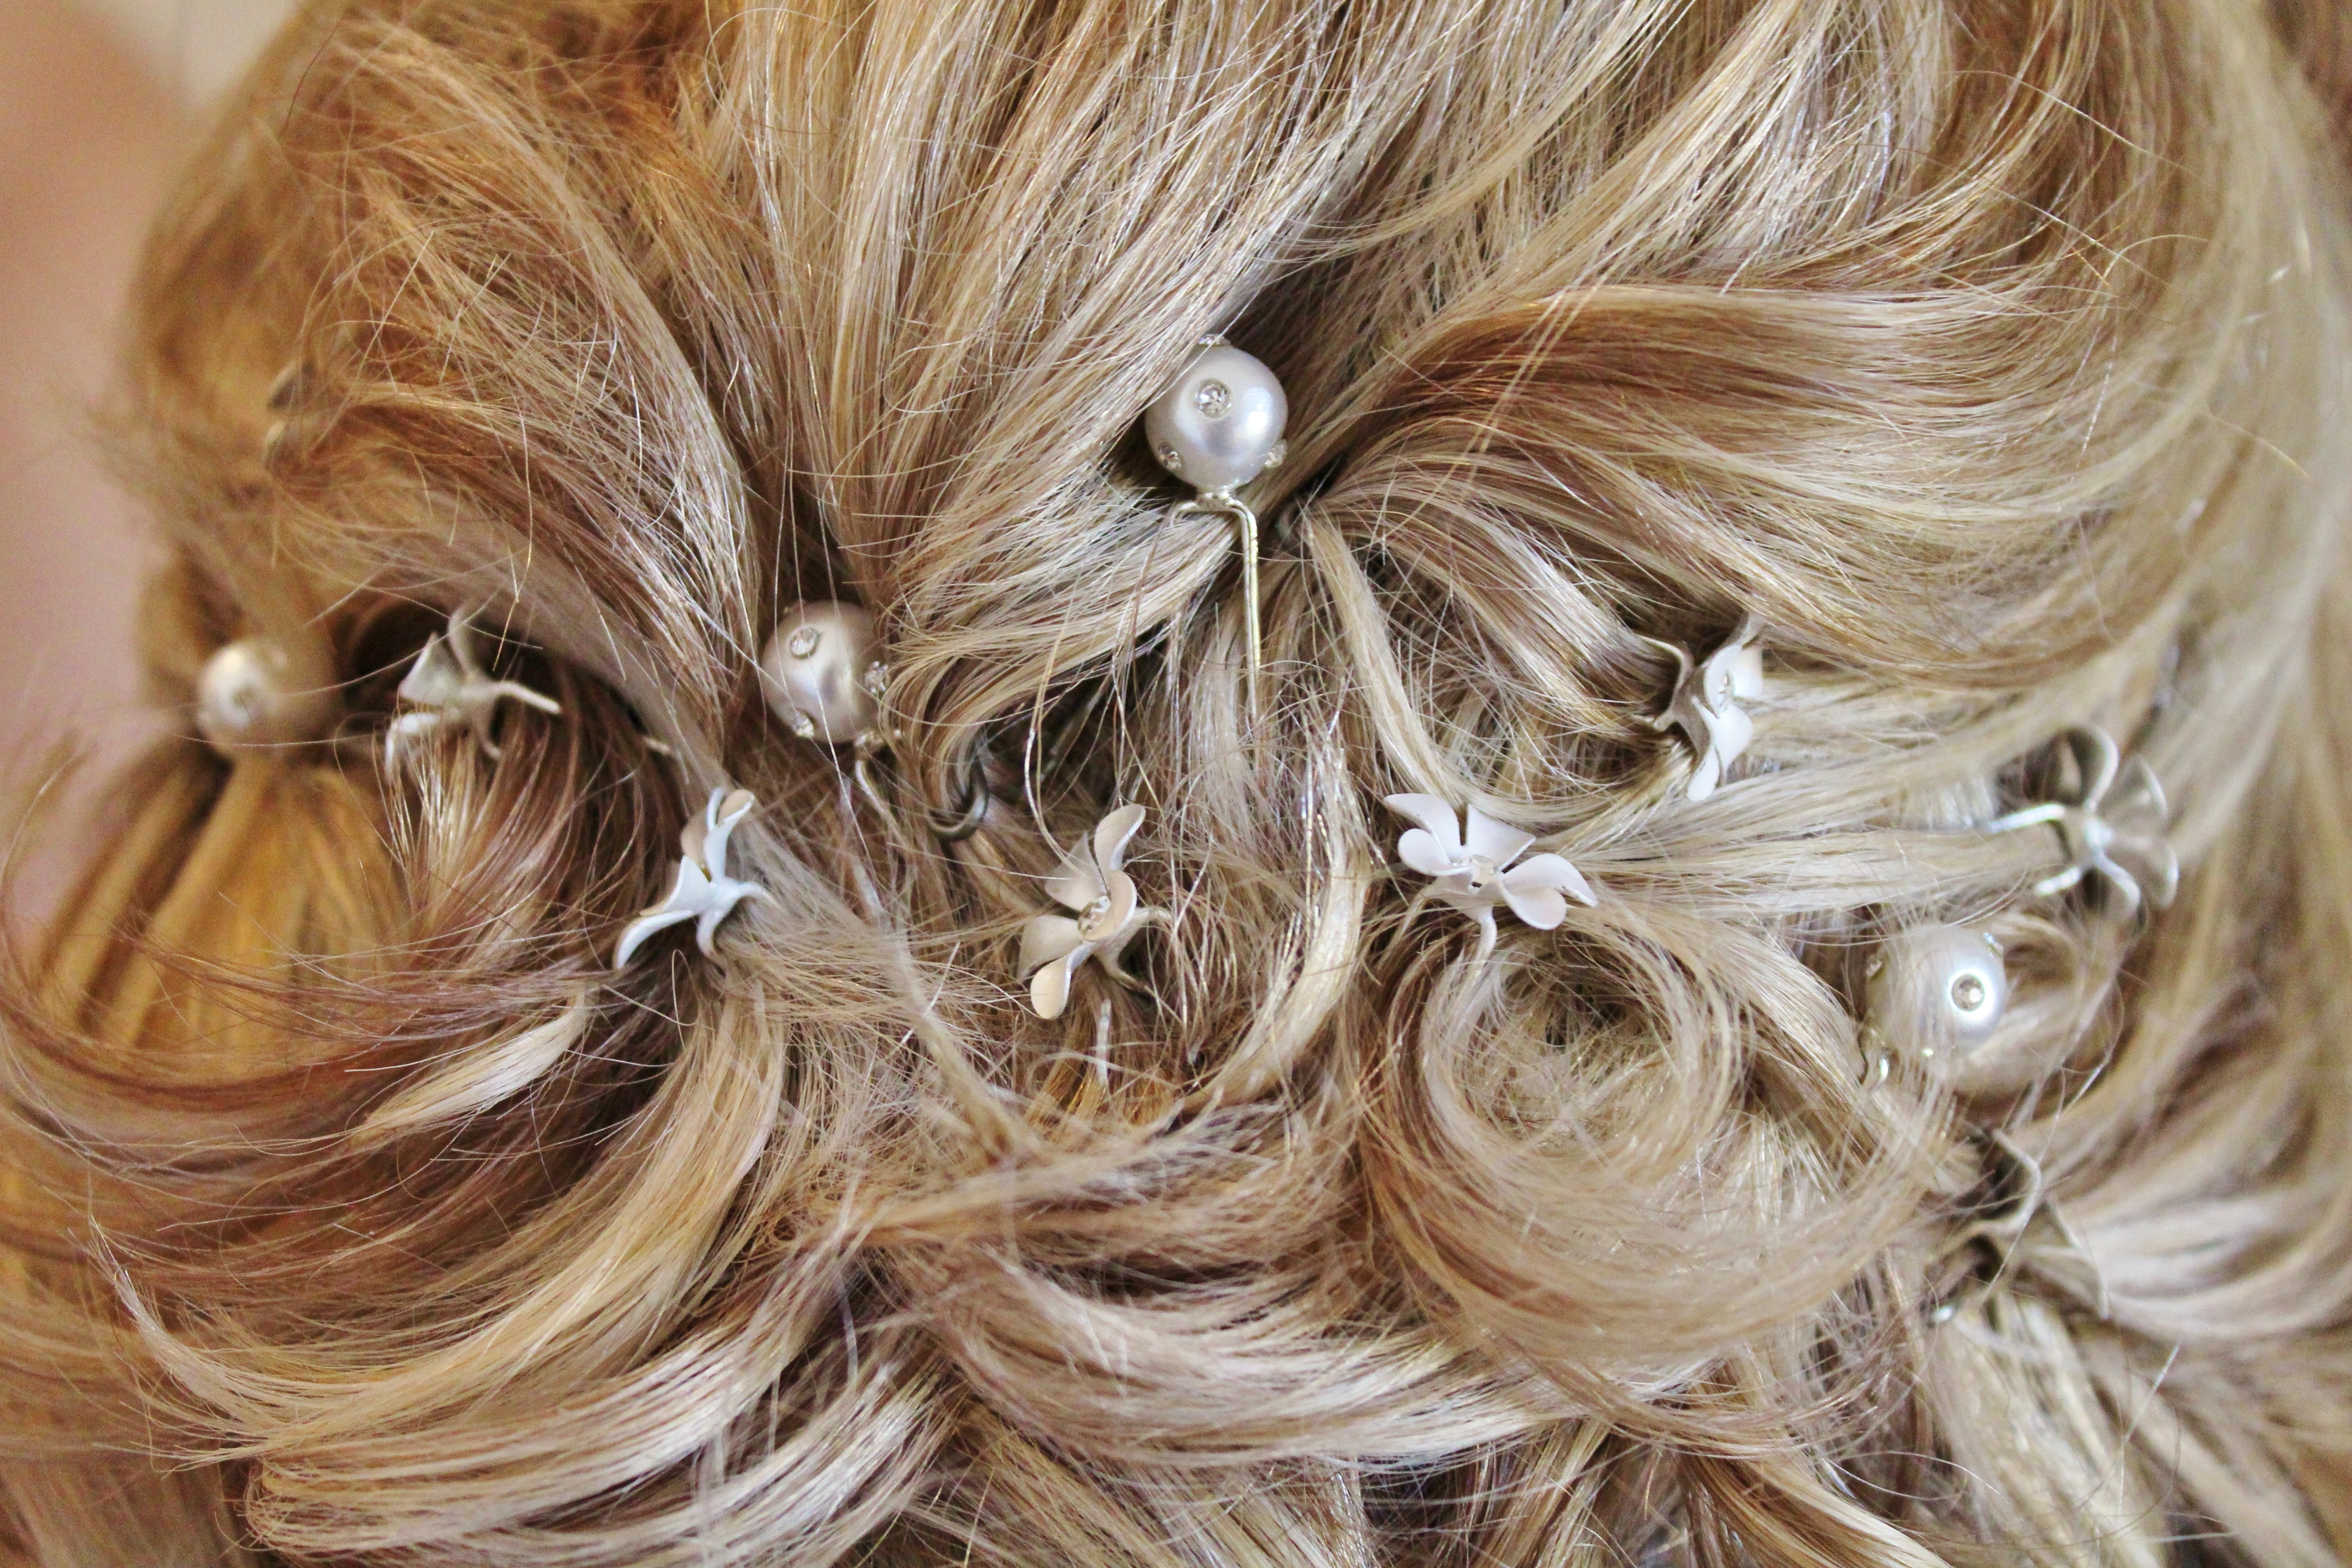 Latest Pinned Up French Plaits Hairstyles Intended For Free Images : Bride, Hairstyle, Long Hair, Blond, Beads, Hairdresser (View 9 of 15)